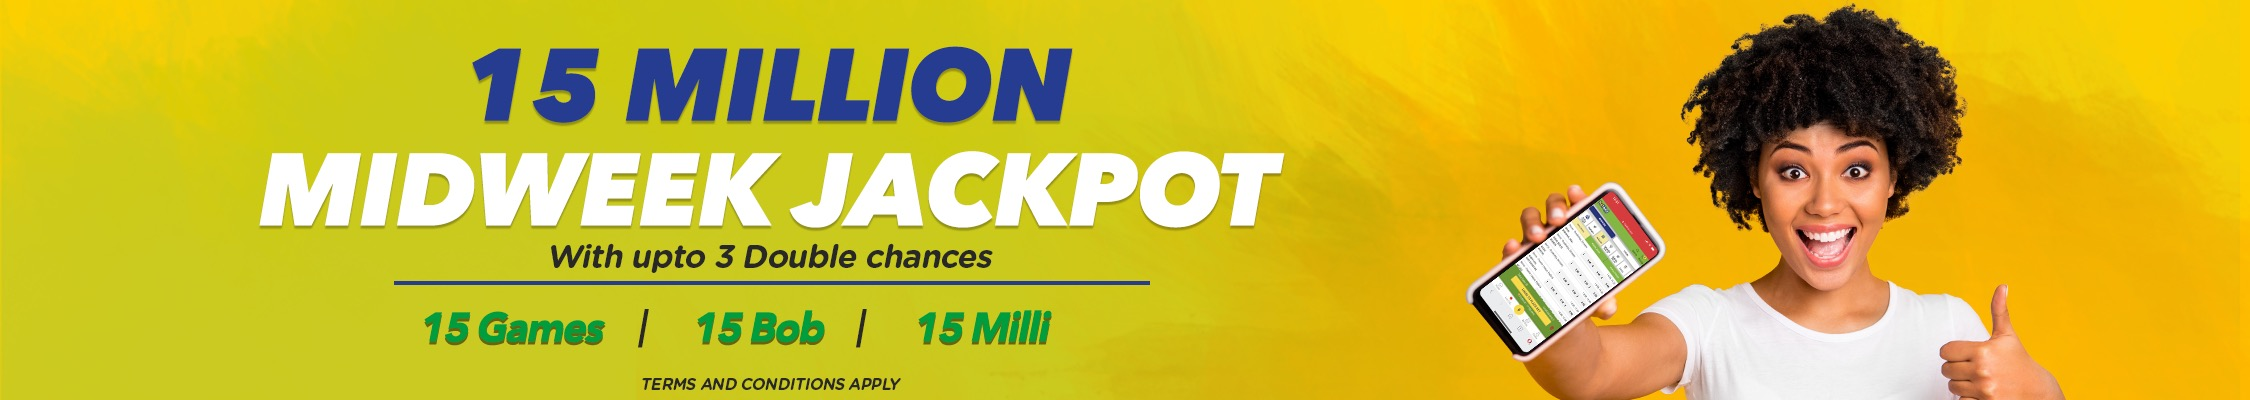 Betika 15M Midweek Jackpot Games Prediction Tips February 02 2020 17 Games Betika Midweek Jackpot Analysis & Predictions Feb 02 2020 Betika 15 MILLION